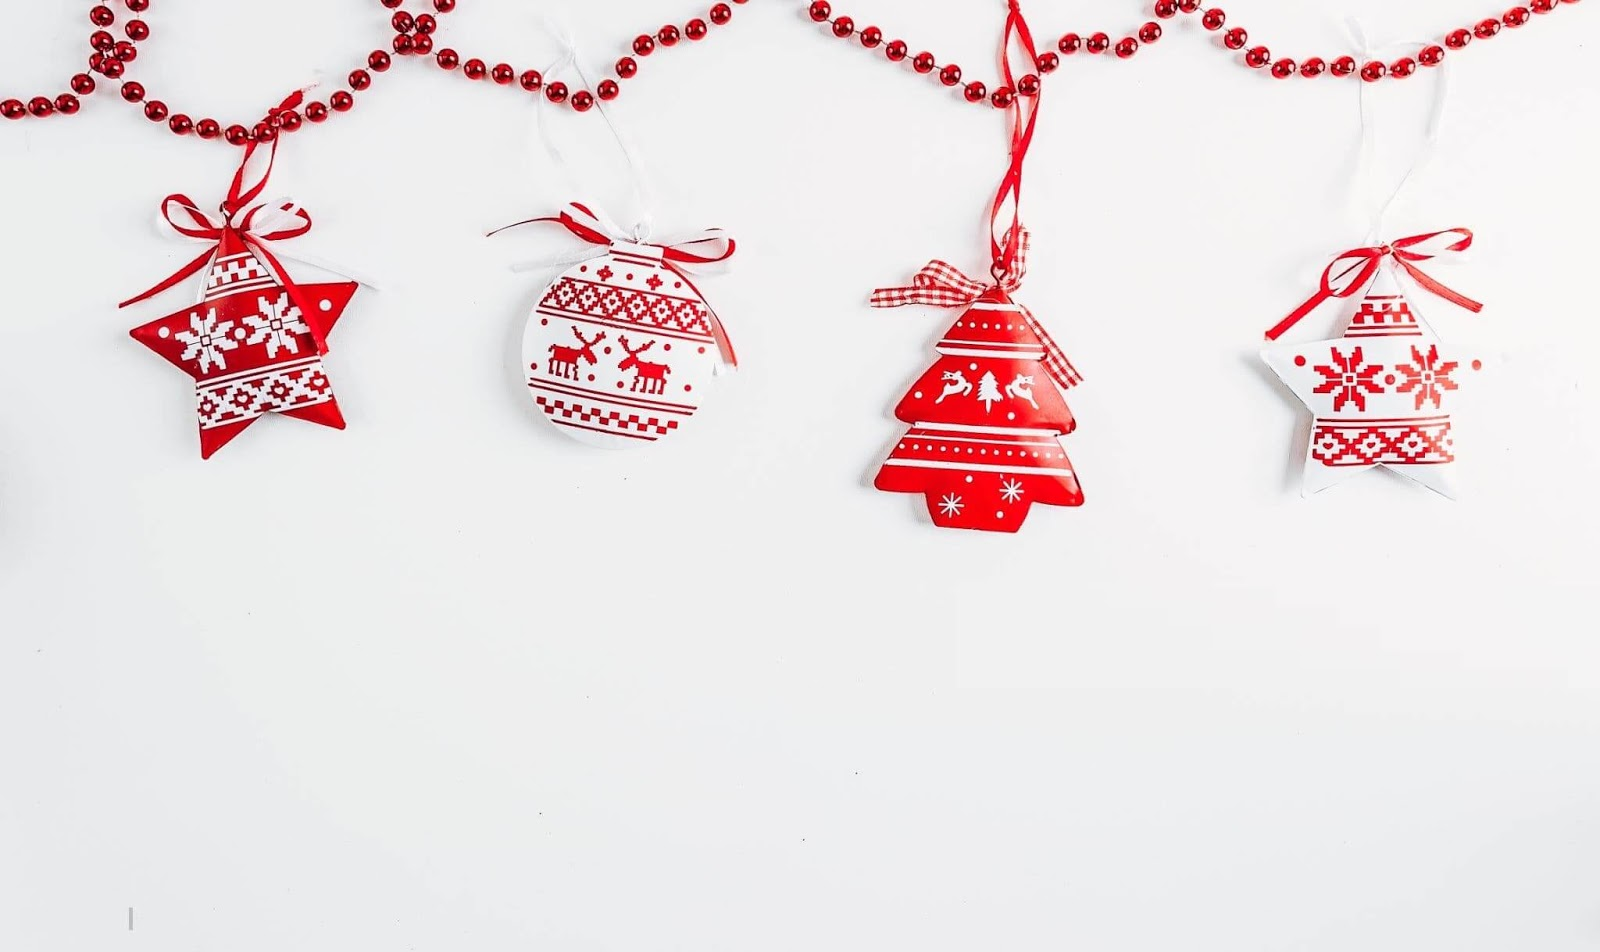 Free Christmas Background Images